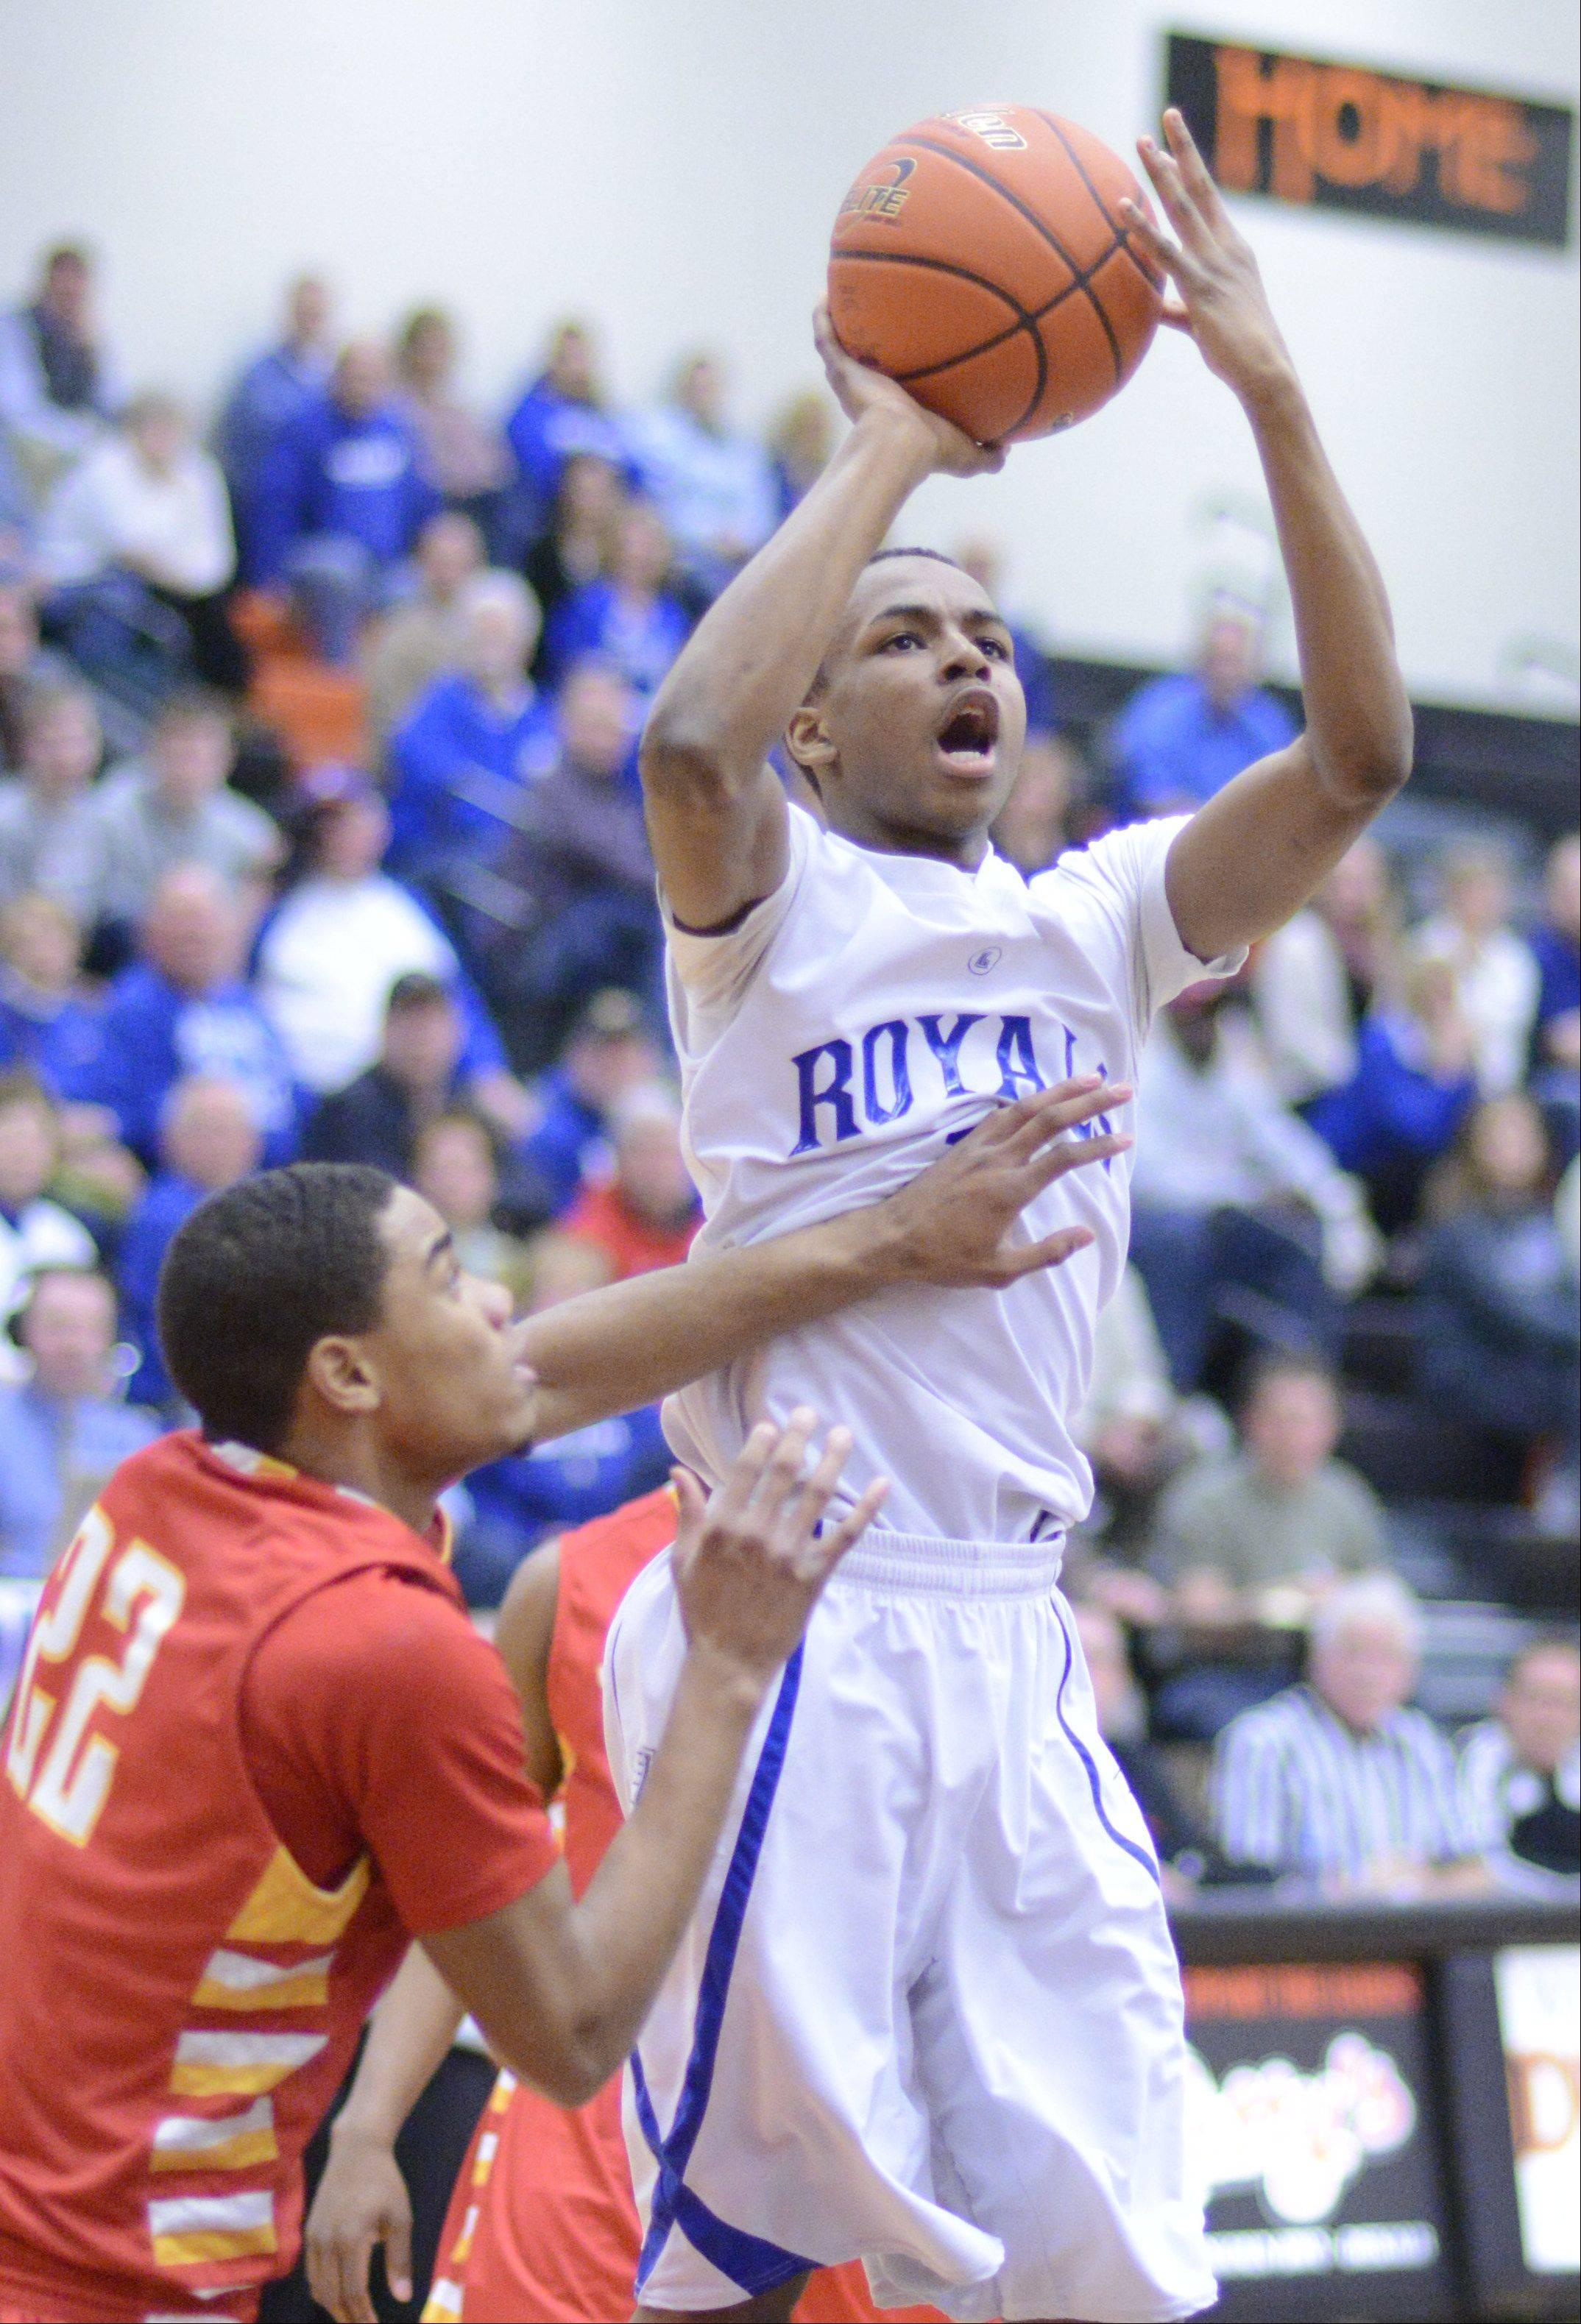 Images from the Larkin vs. Rockford Jefferson Class 4A boys sectional semifinal in Dekalb Wednesday, March 6, 2013.